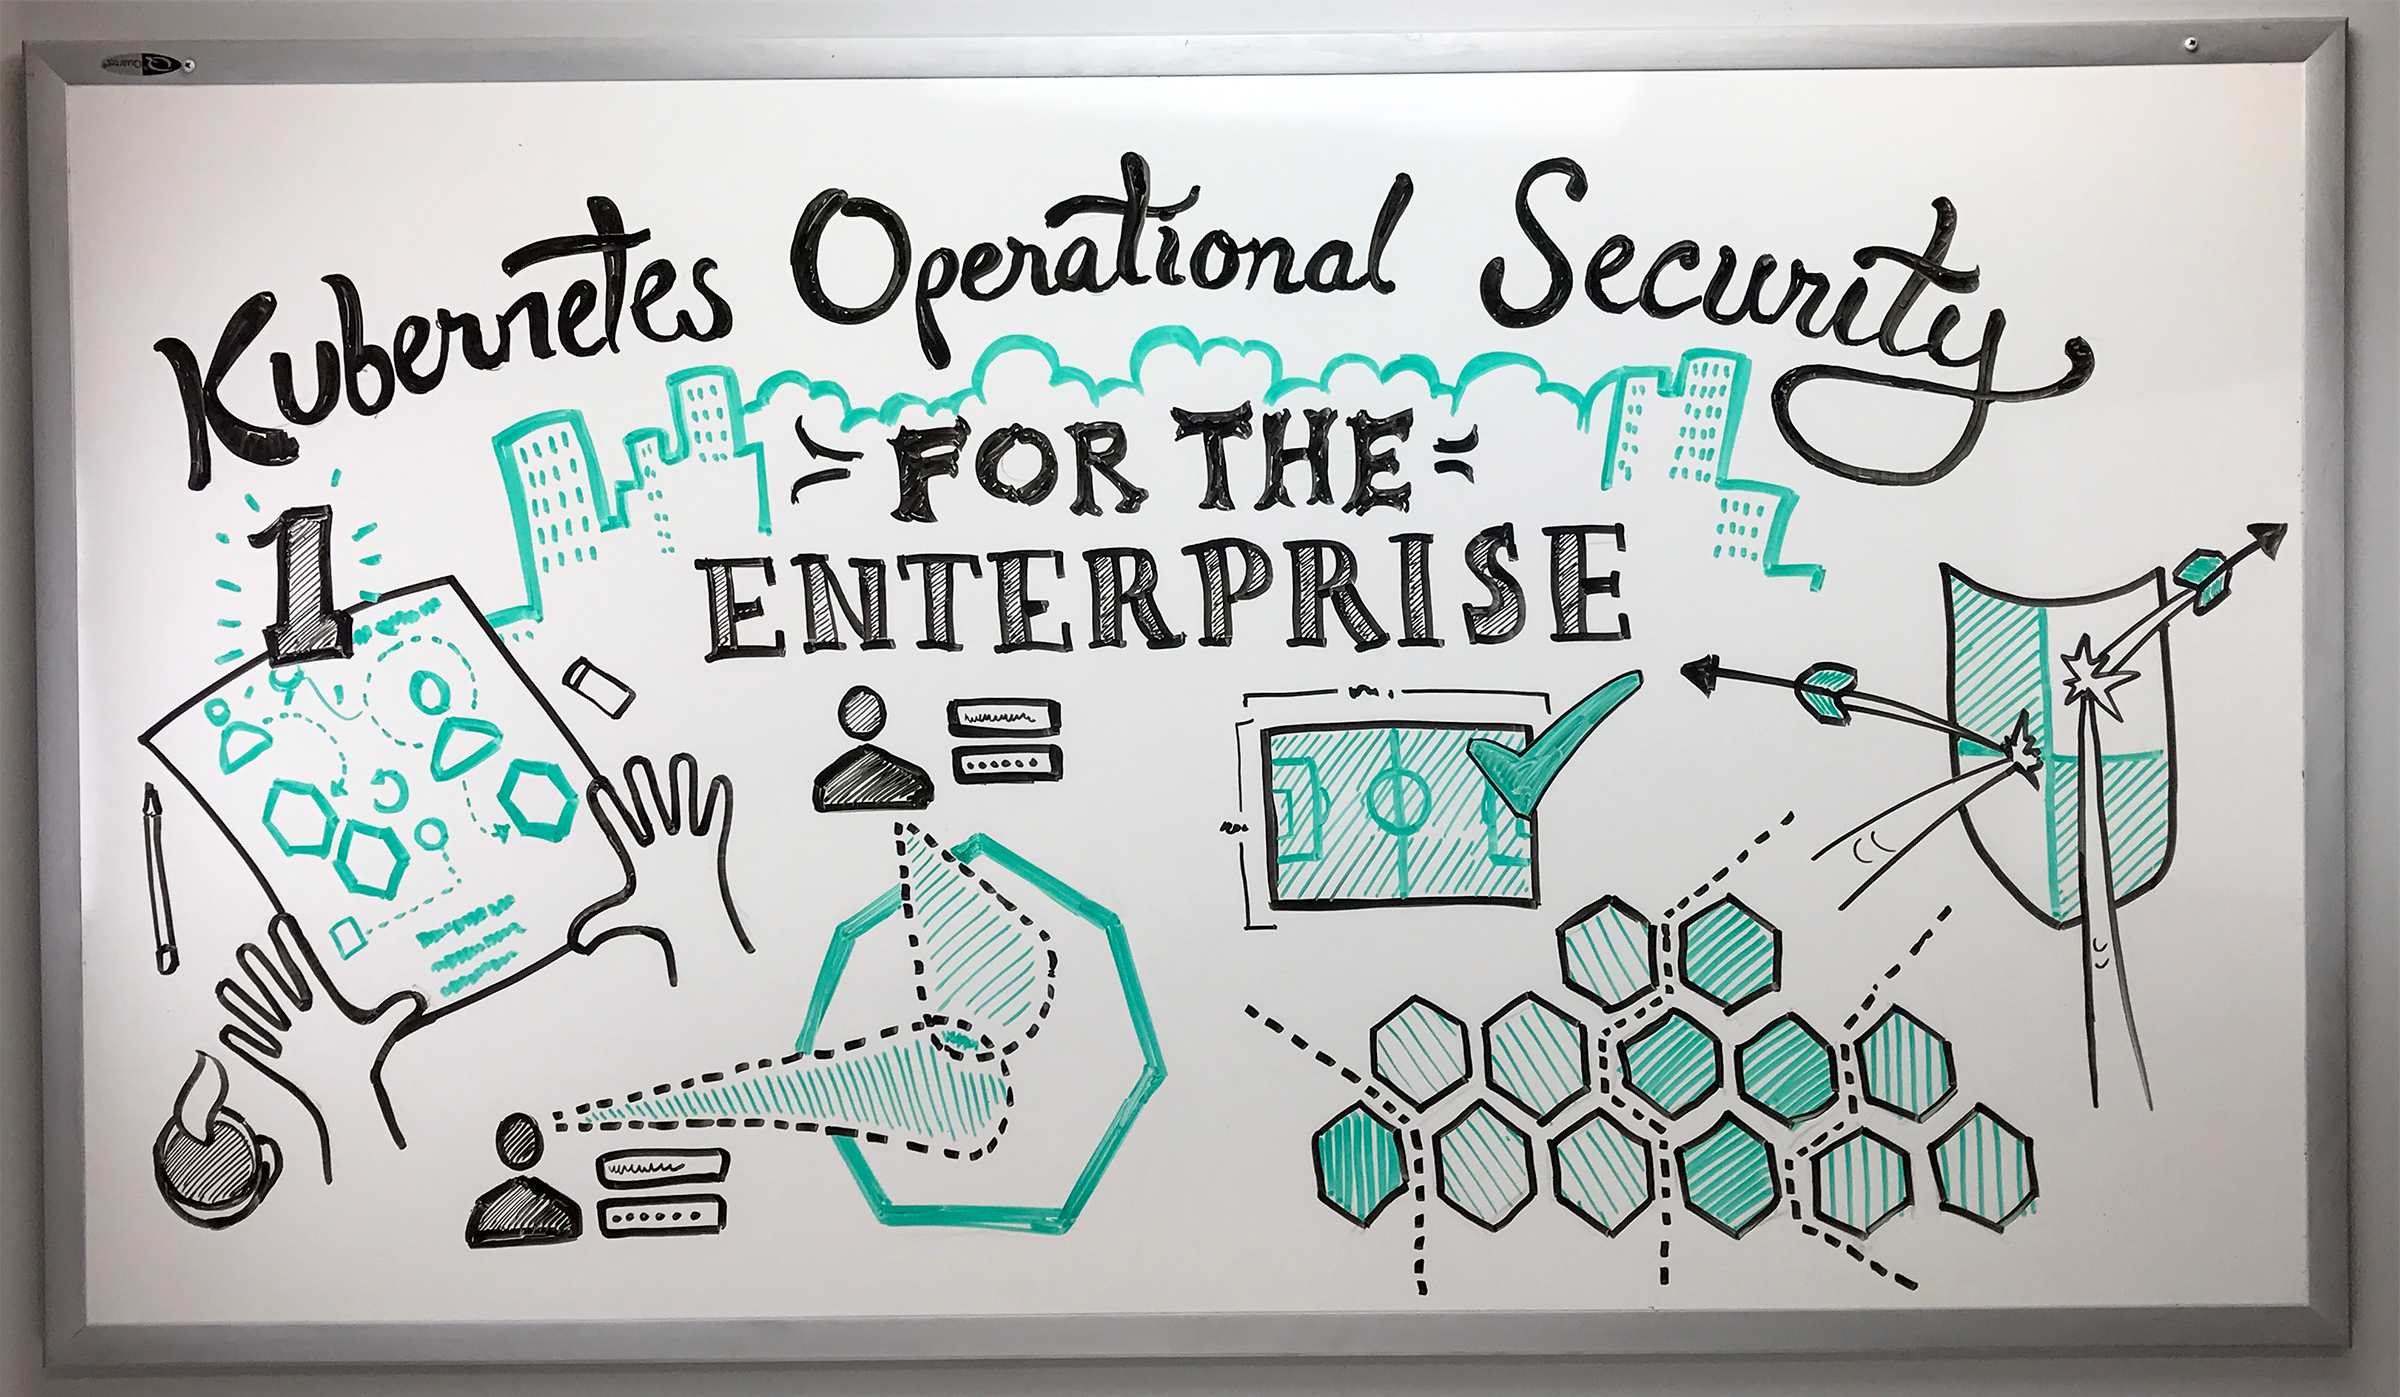 Kubernetes operational security for the enterprise